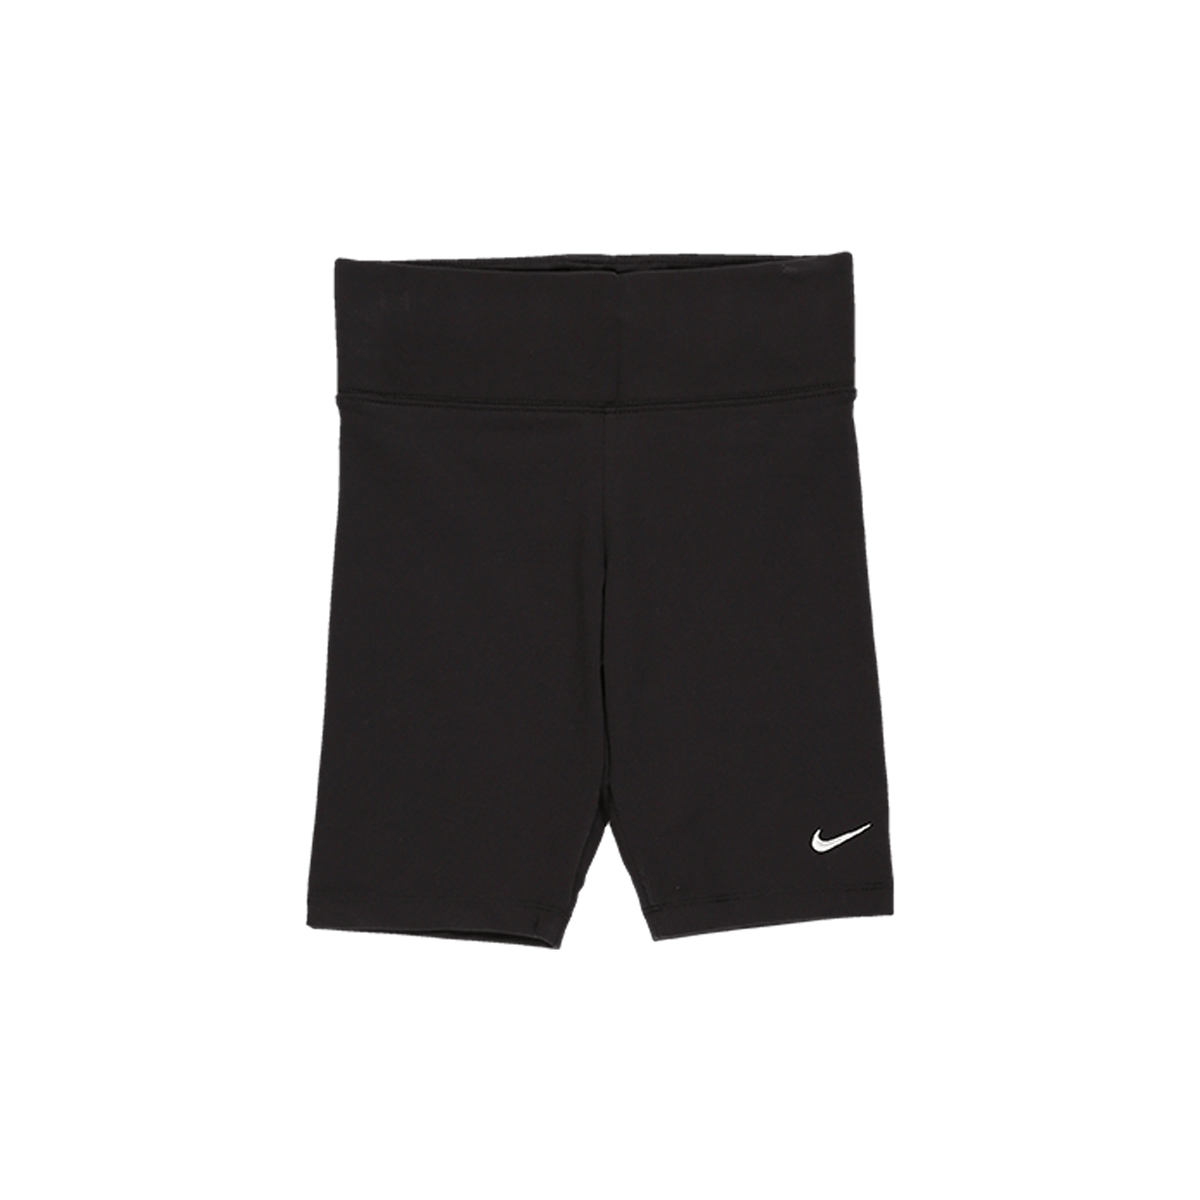 Nike Women's Leg-A-See Shorts  - XHIBITION